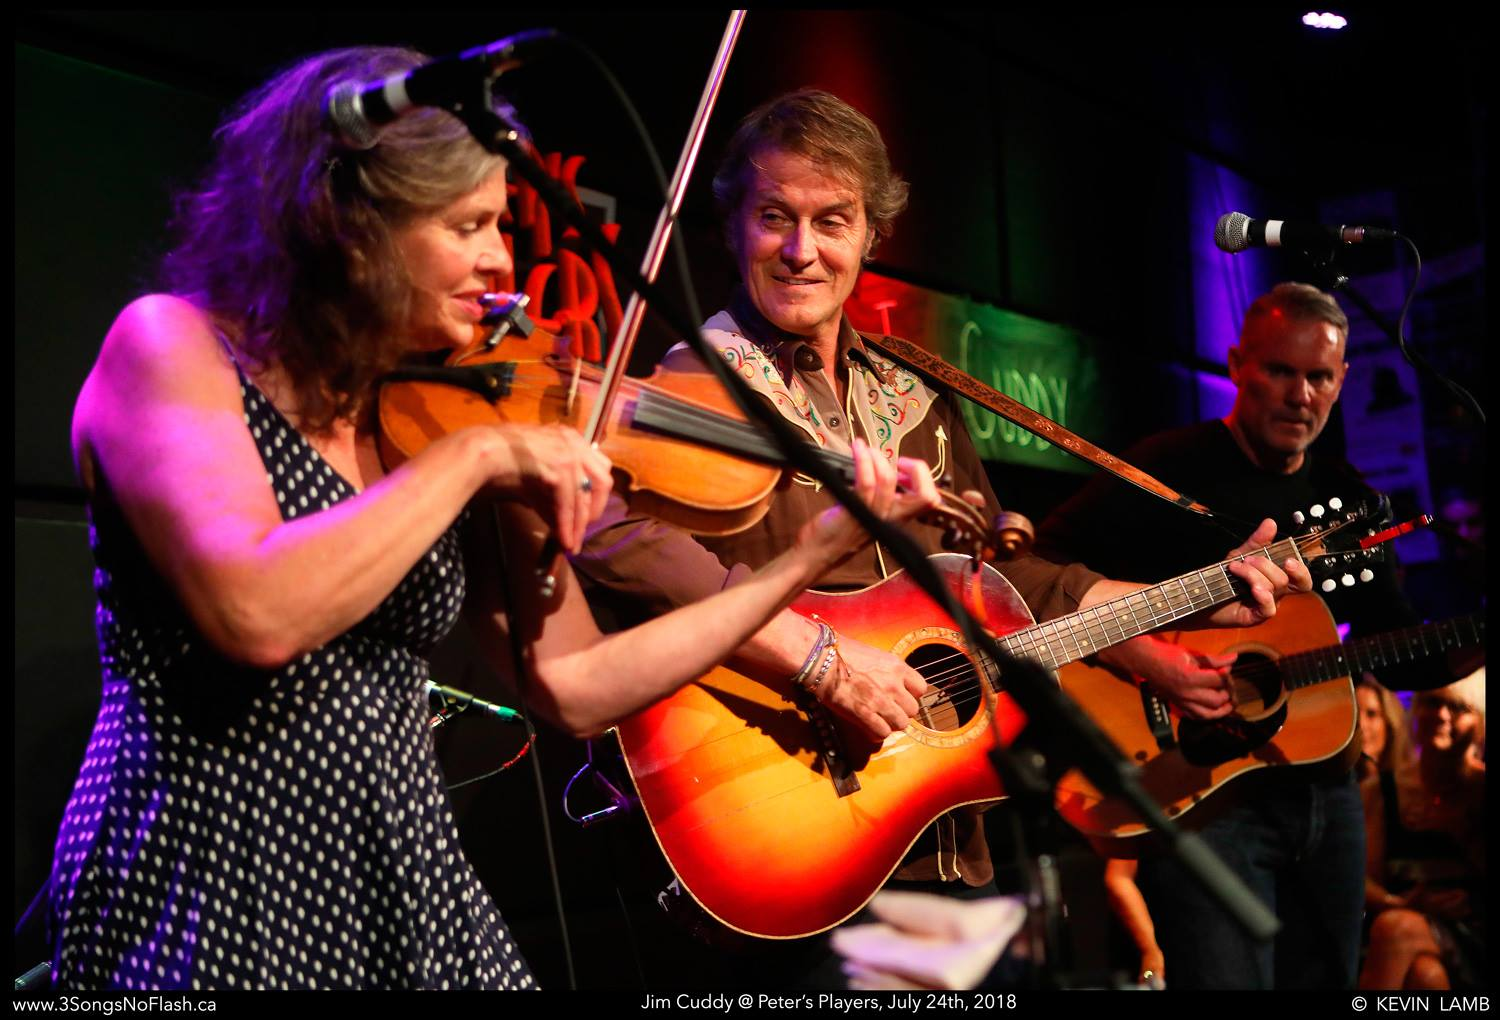 Peters Players fiddler and guitarist on stage